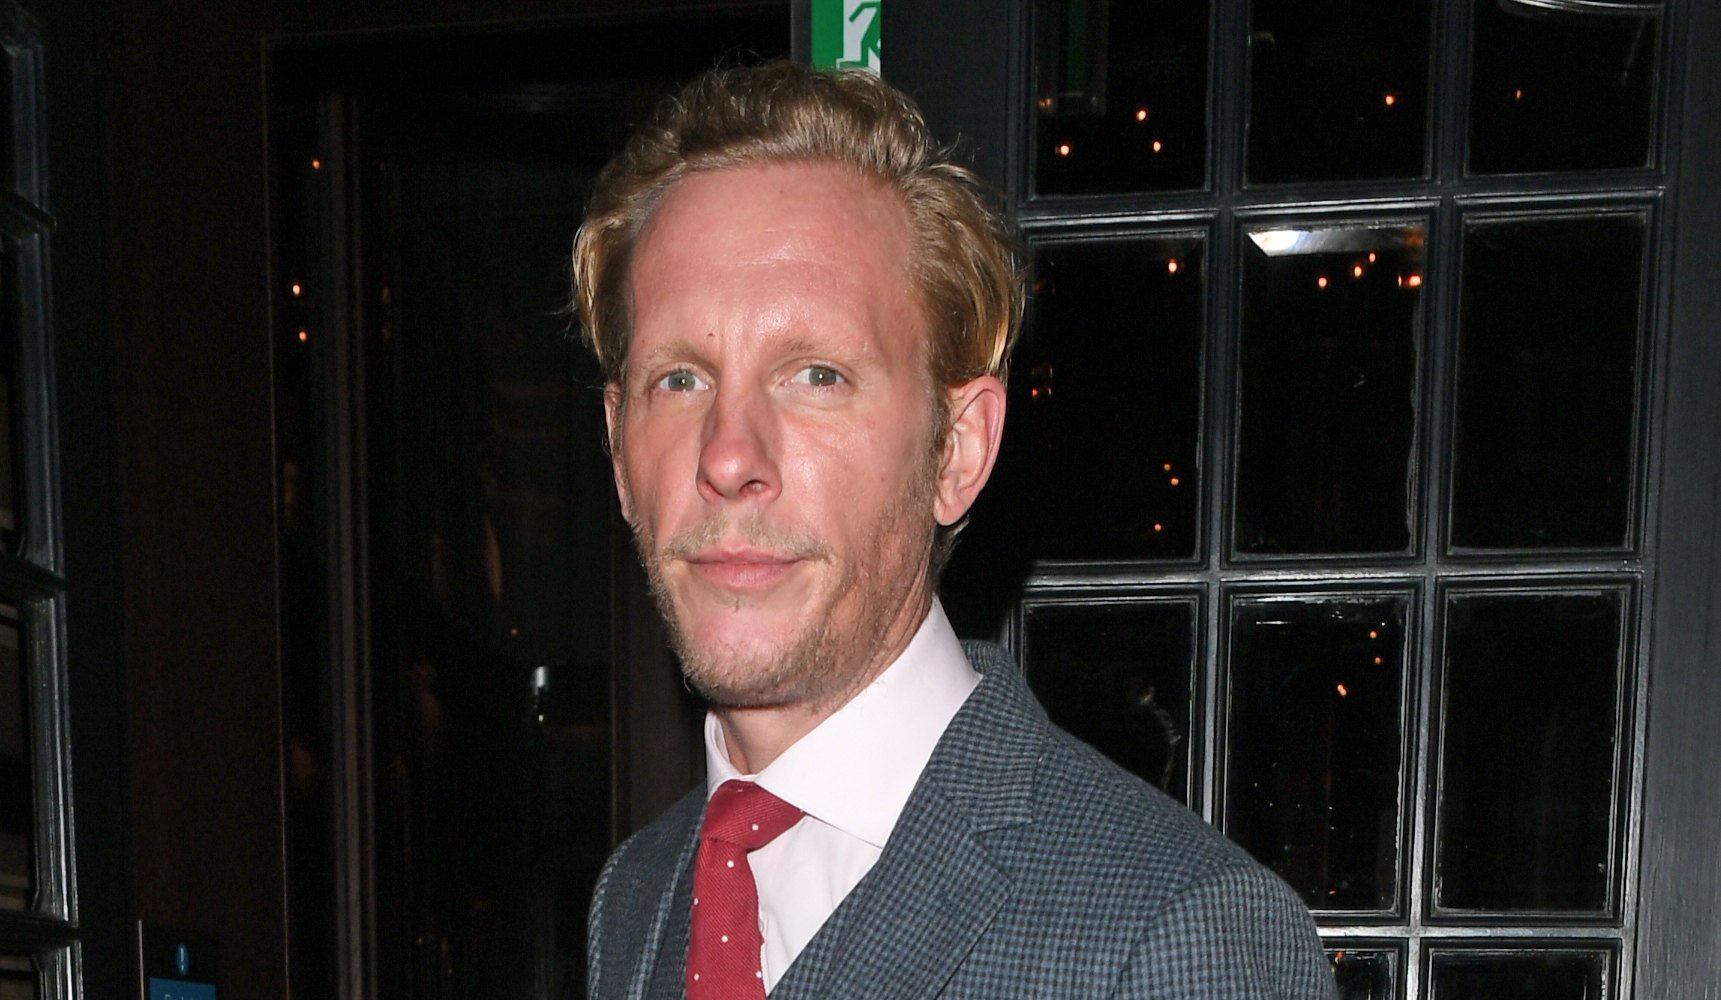 Laurence Fox takes 'extended break' from Twitter after becoming 'depressed' with abuse